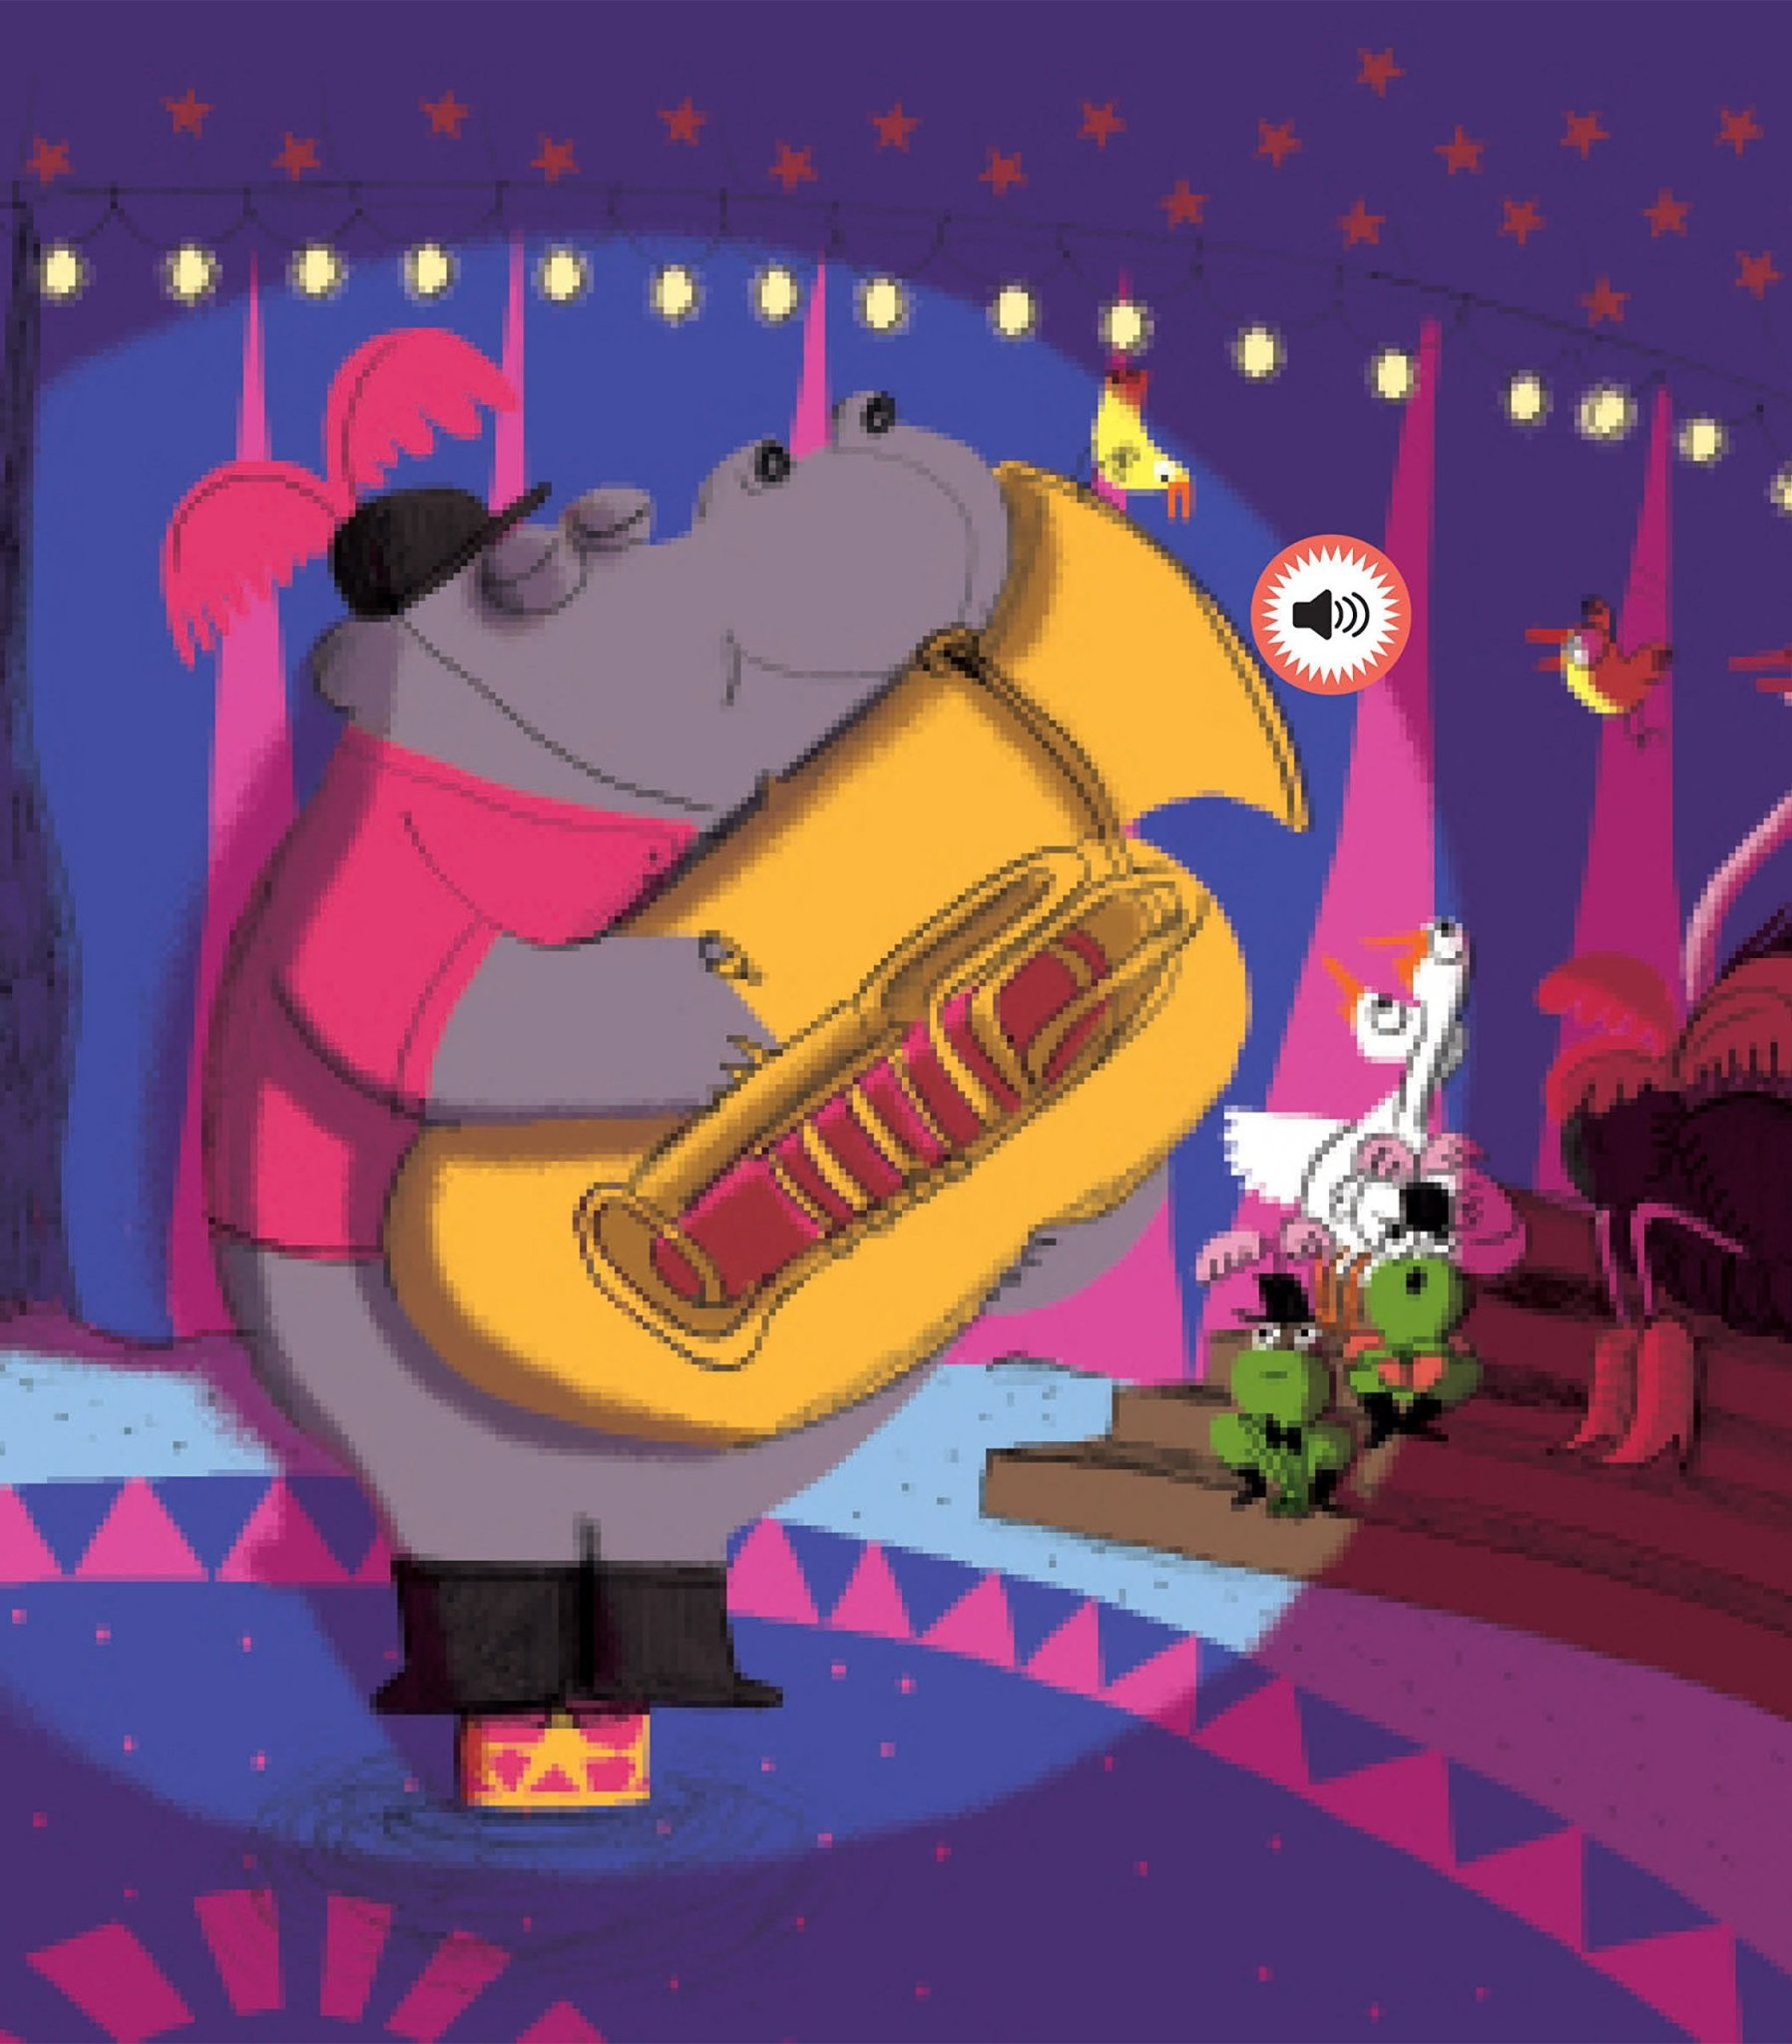 Poppy and the Brass Band Storybook